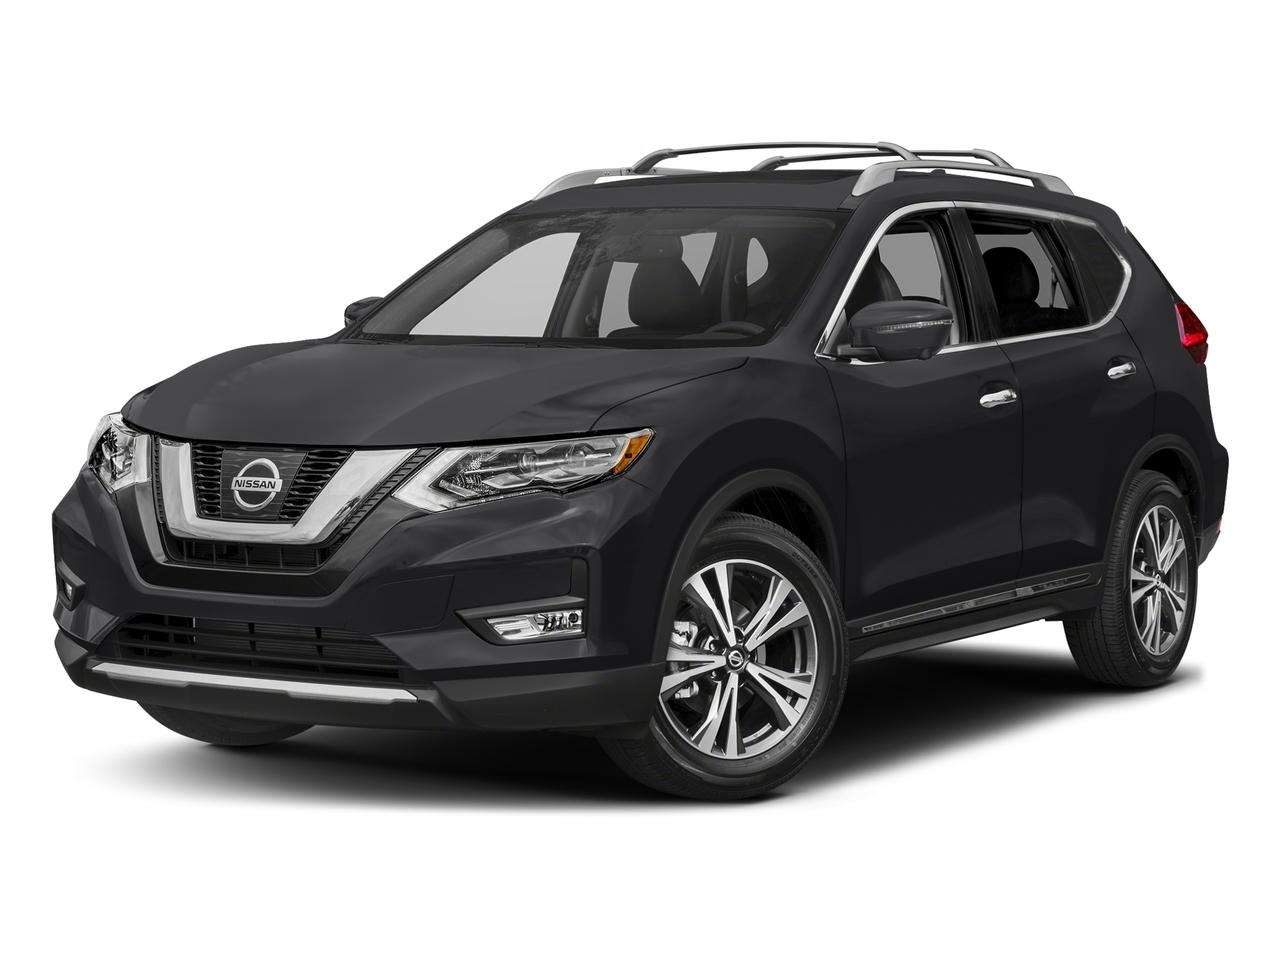 2017 Nissan Rogue Vehicle Photo in Oshkosh, WI 54904